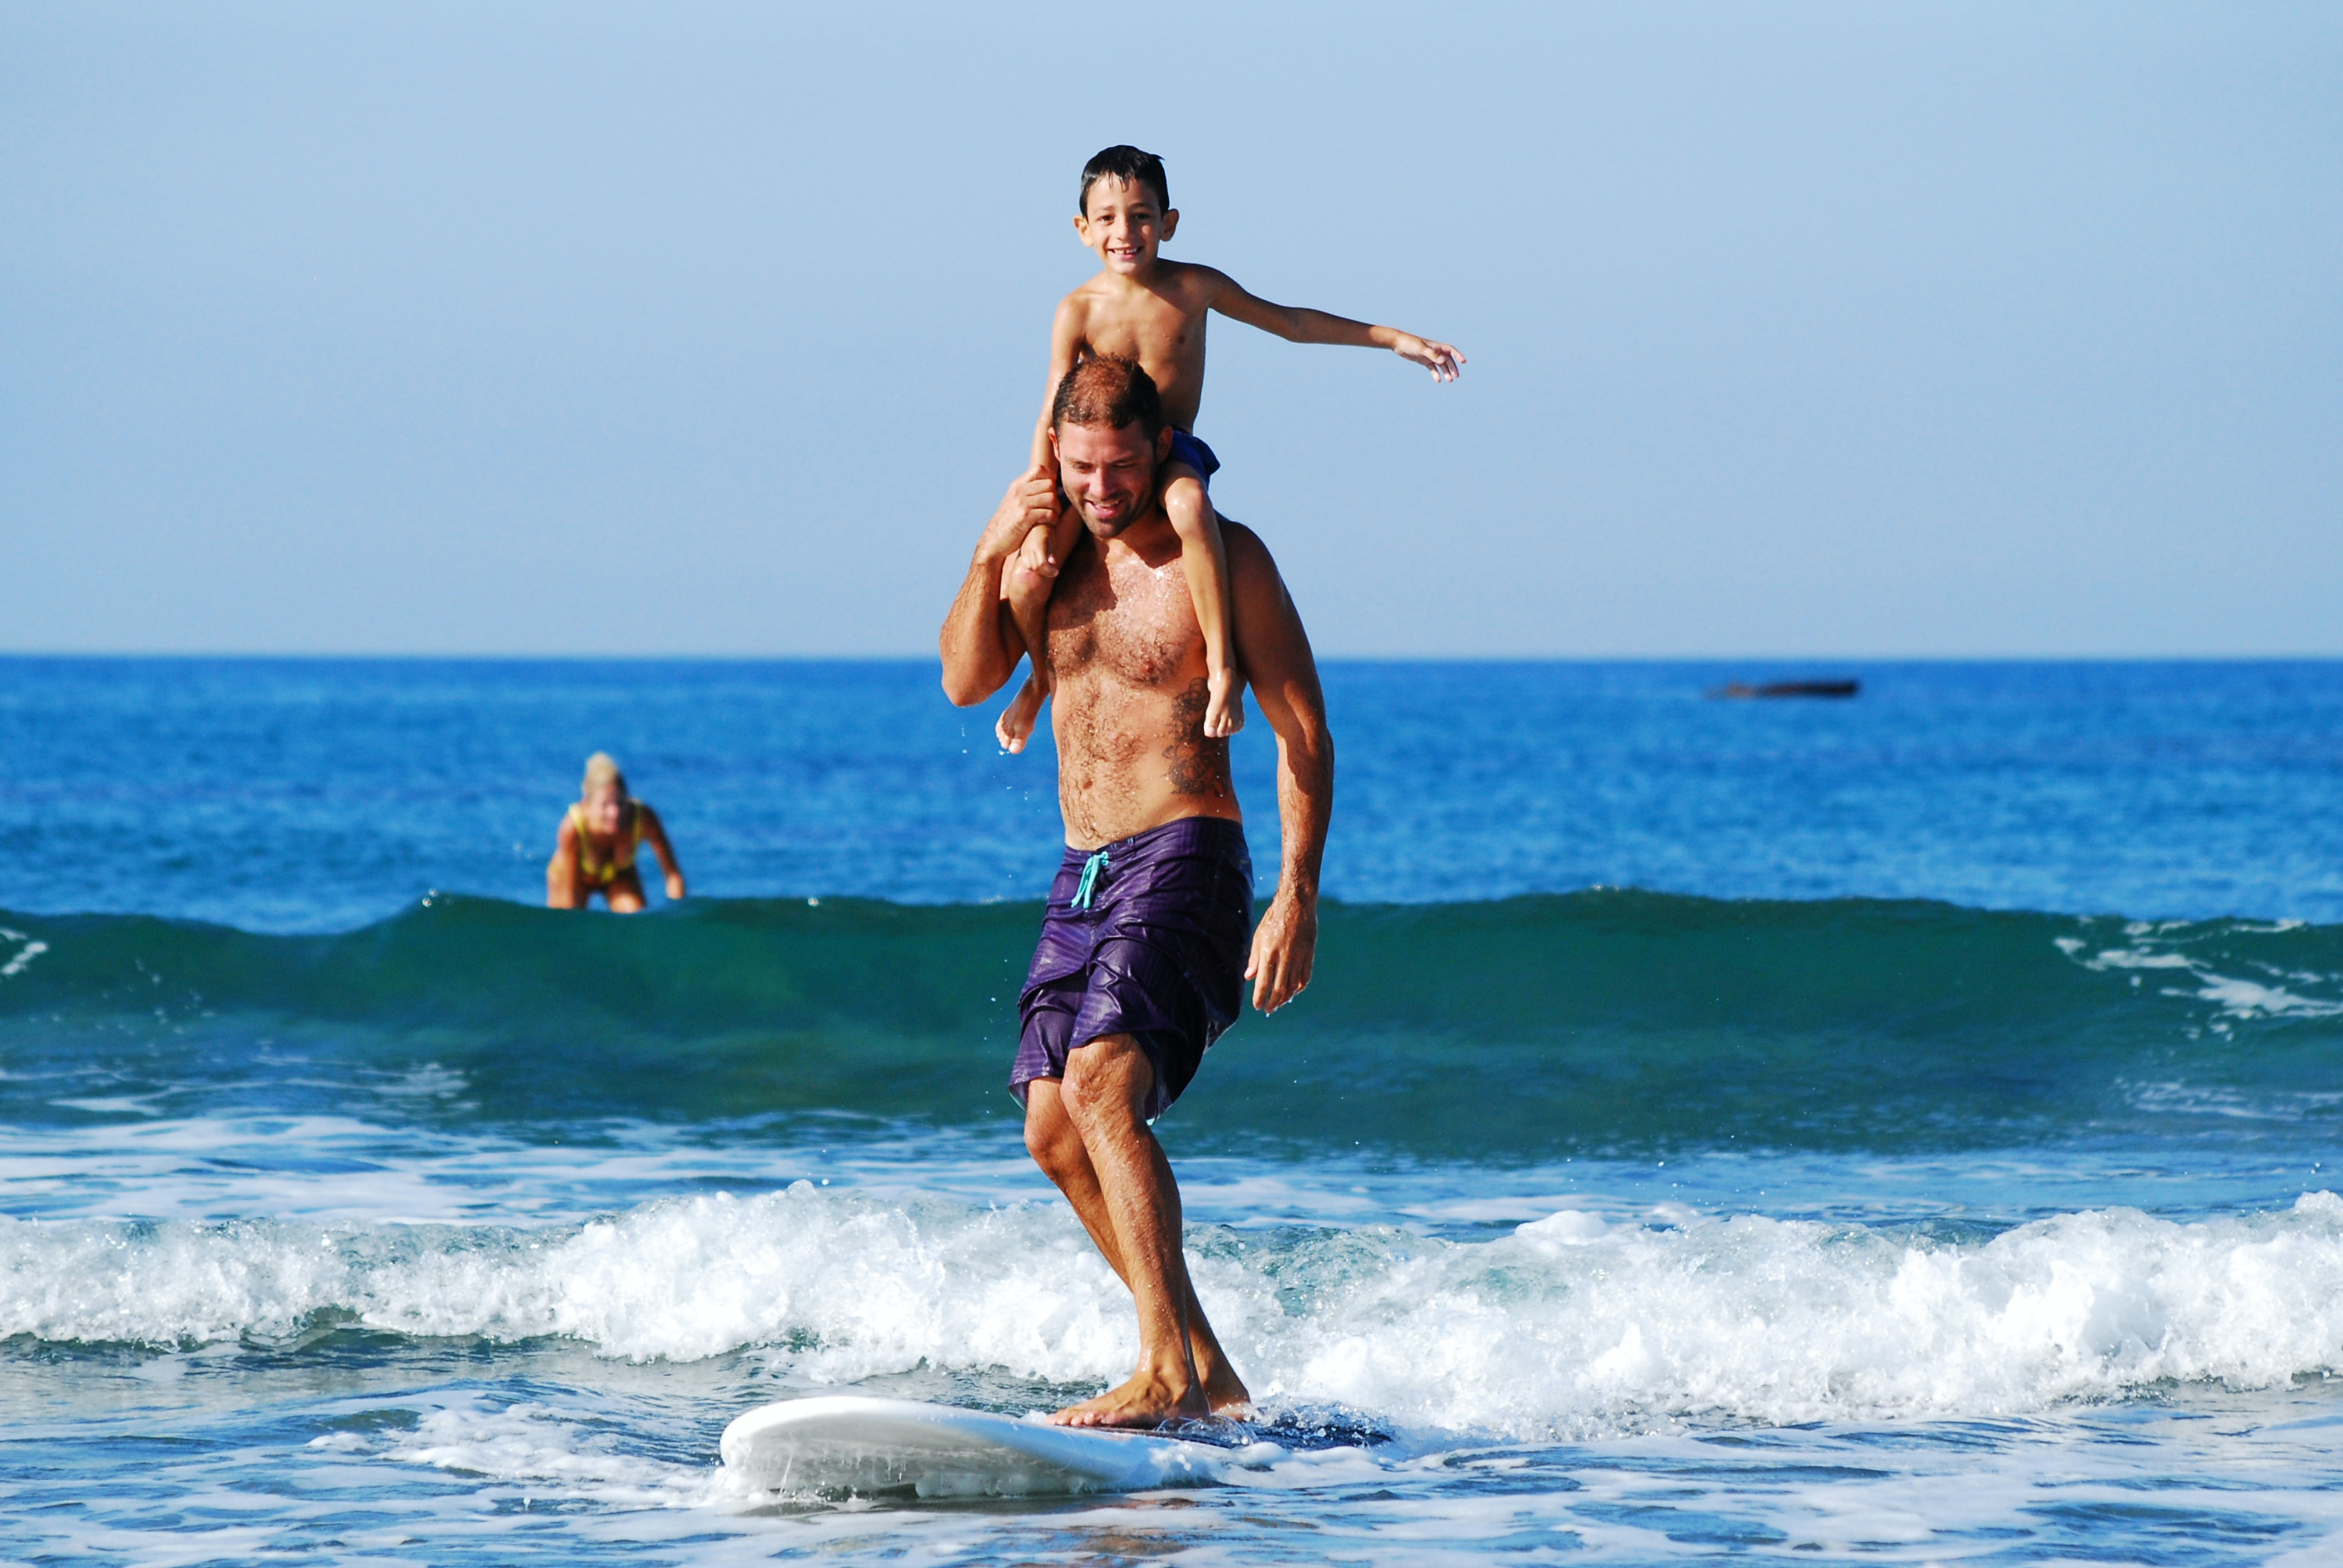 man surfboarding while lifting child